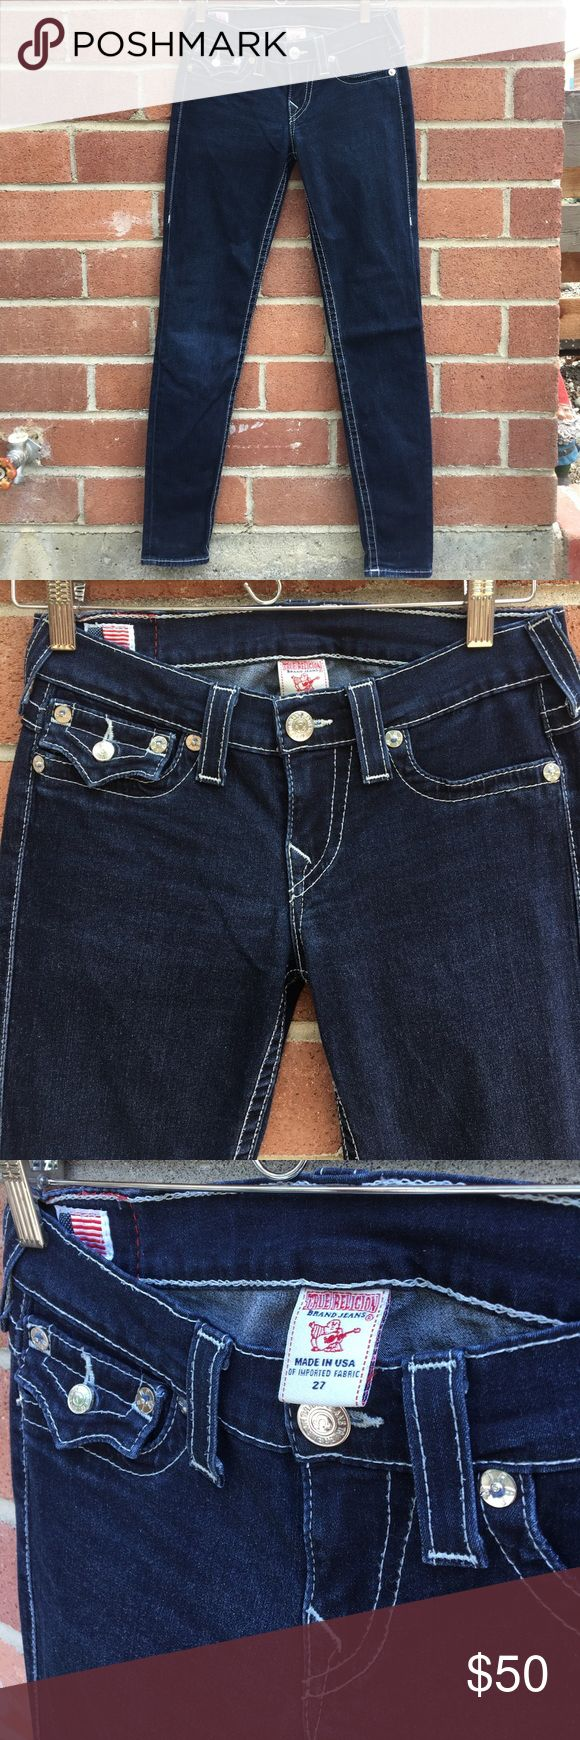 True Religion Misty Super Skinny Jeans True Religion Misty Super Skinny Jeans, size 27, EUC. True Religion Jeans Skinny